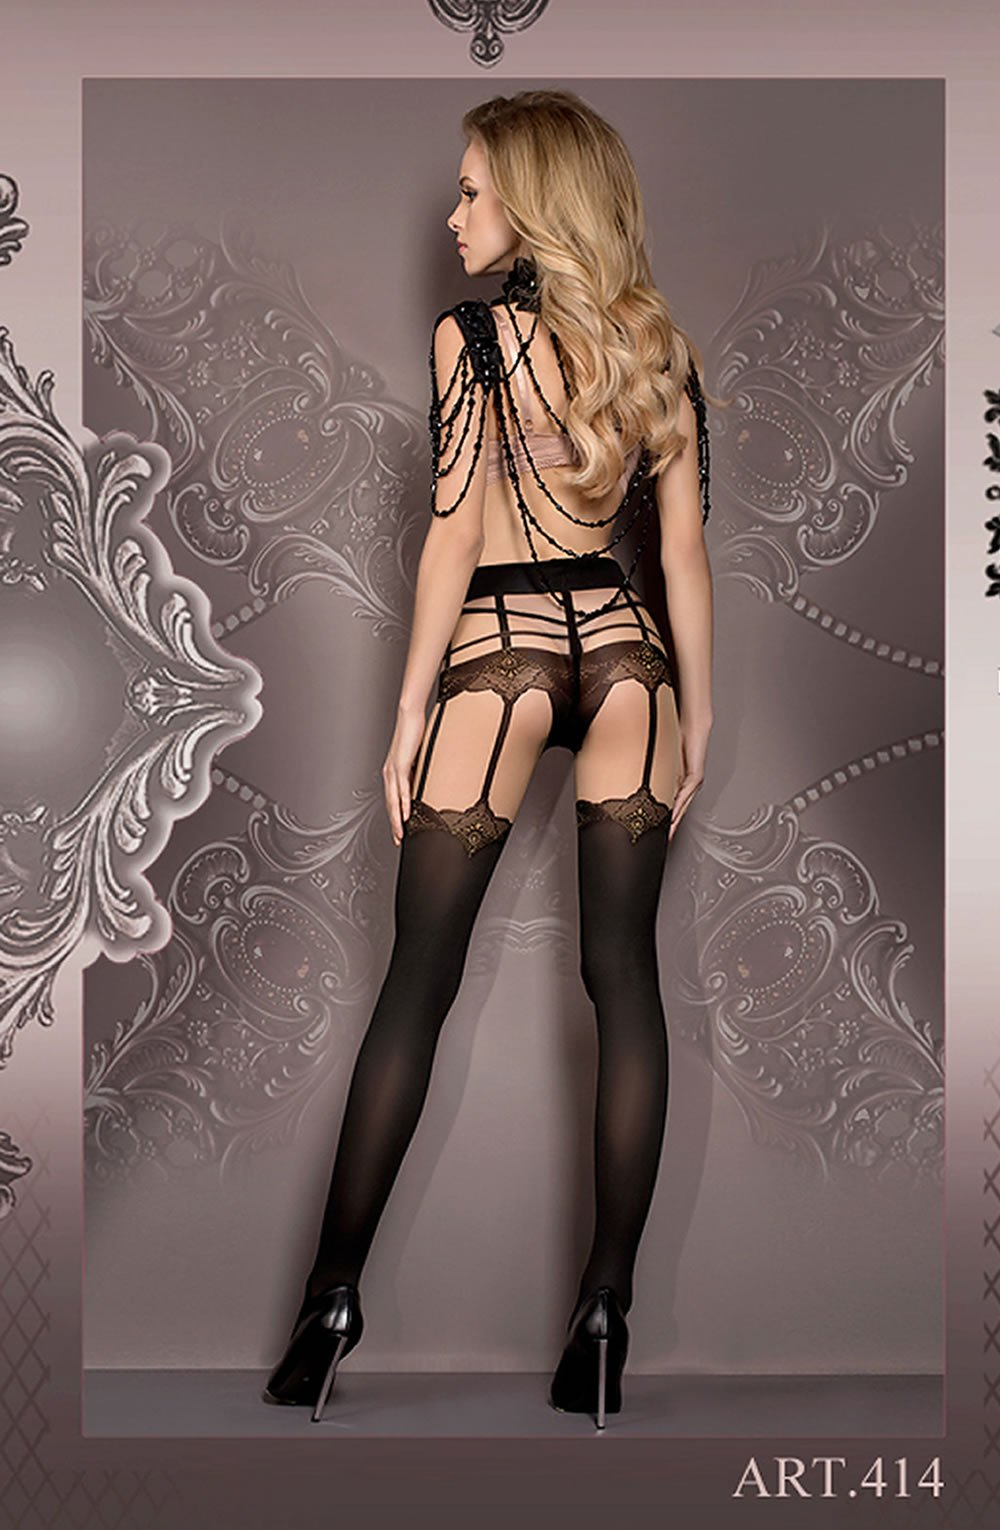 TIGHTS - SKIN/BLACK - BALLERINA 414 - AvecEnvie